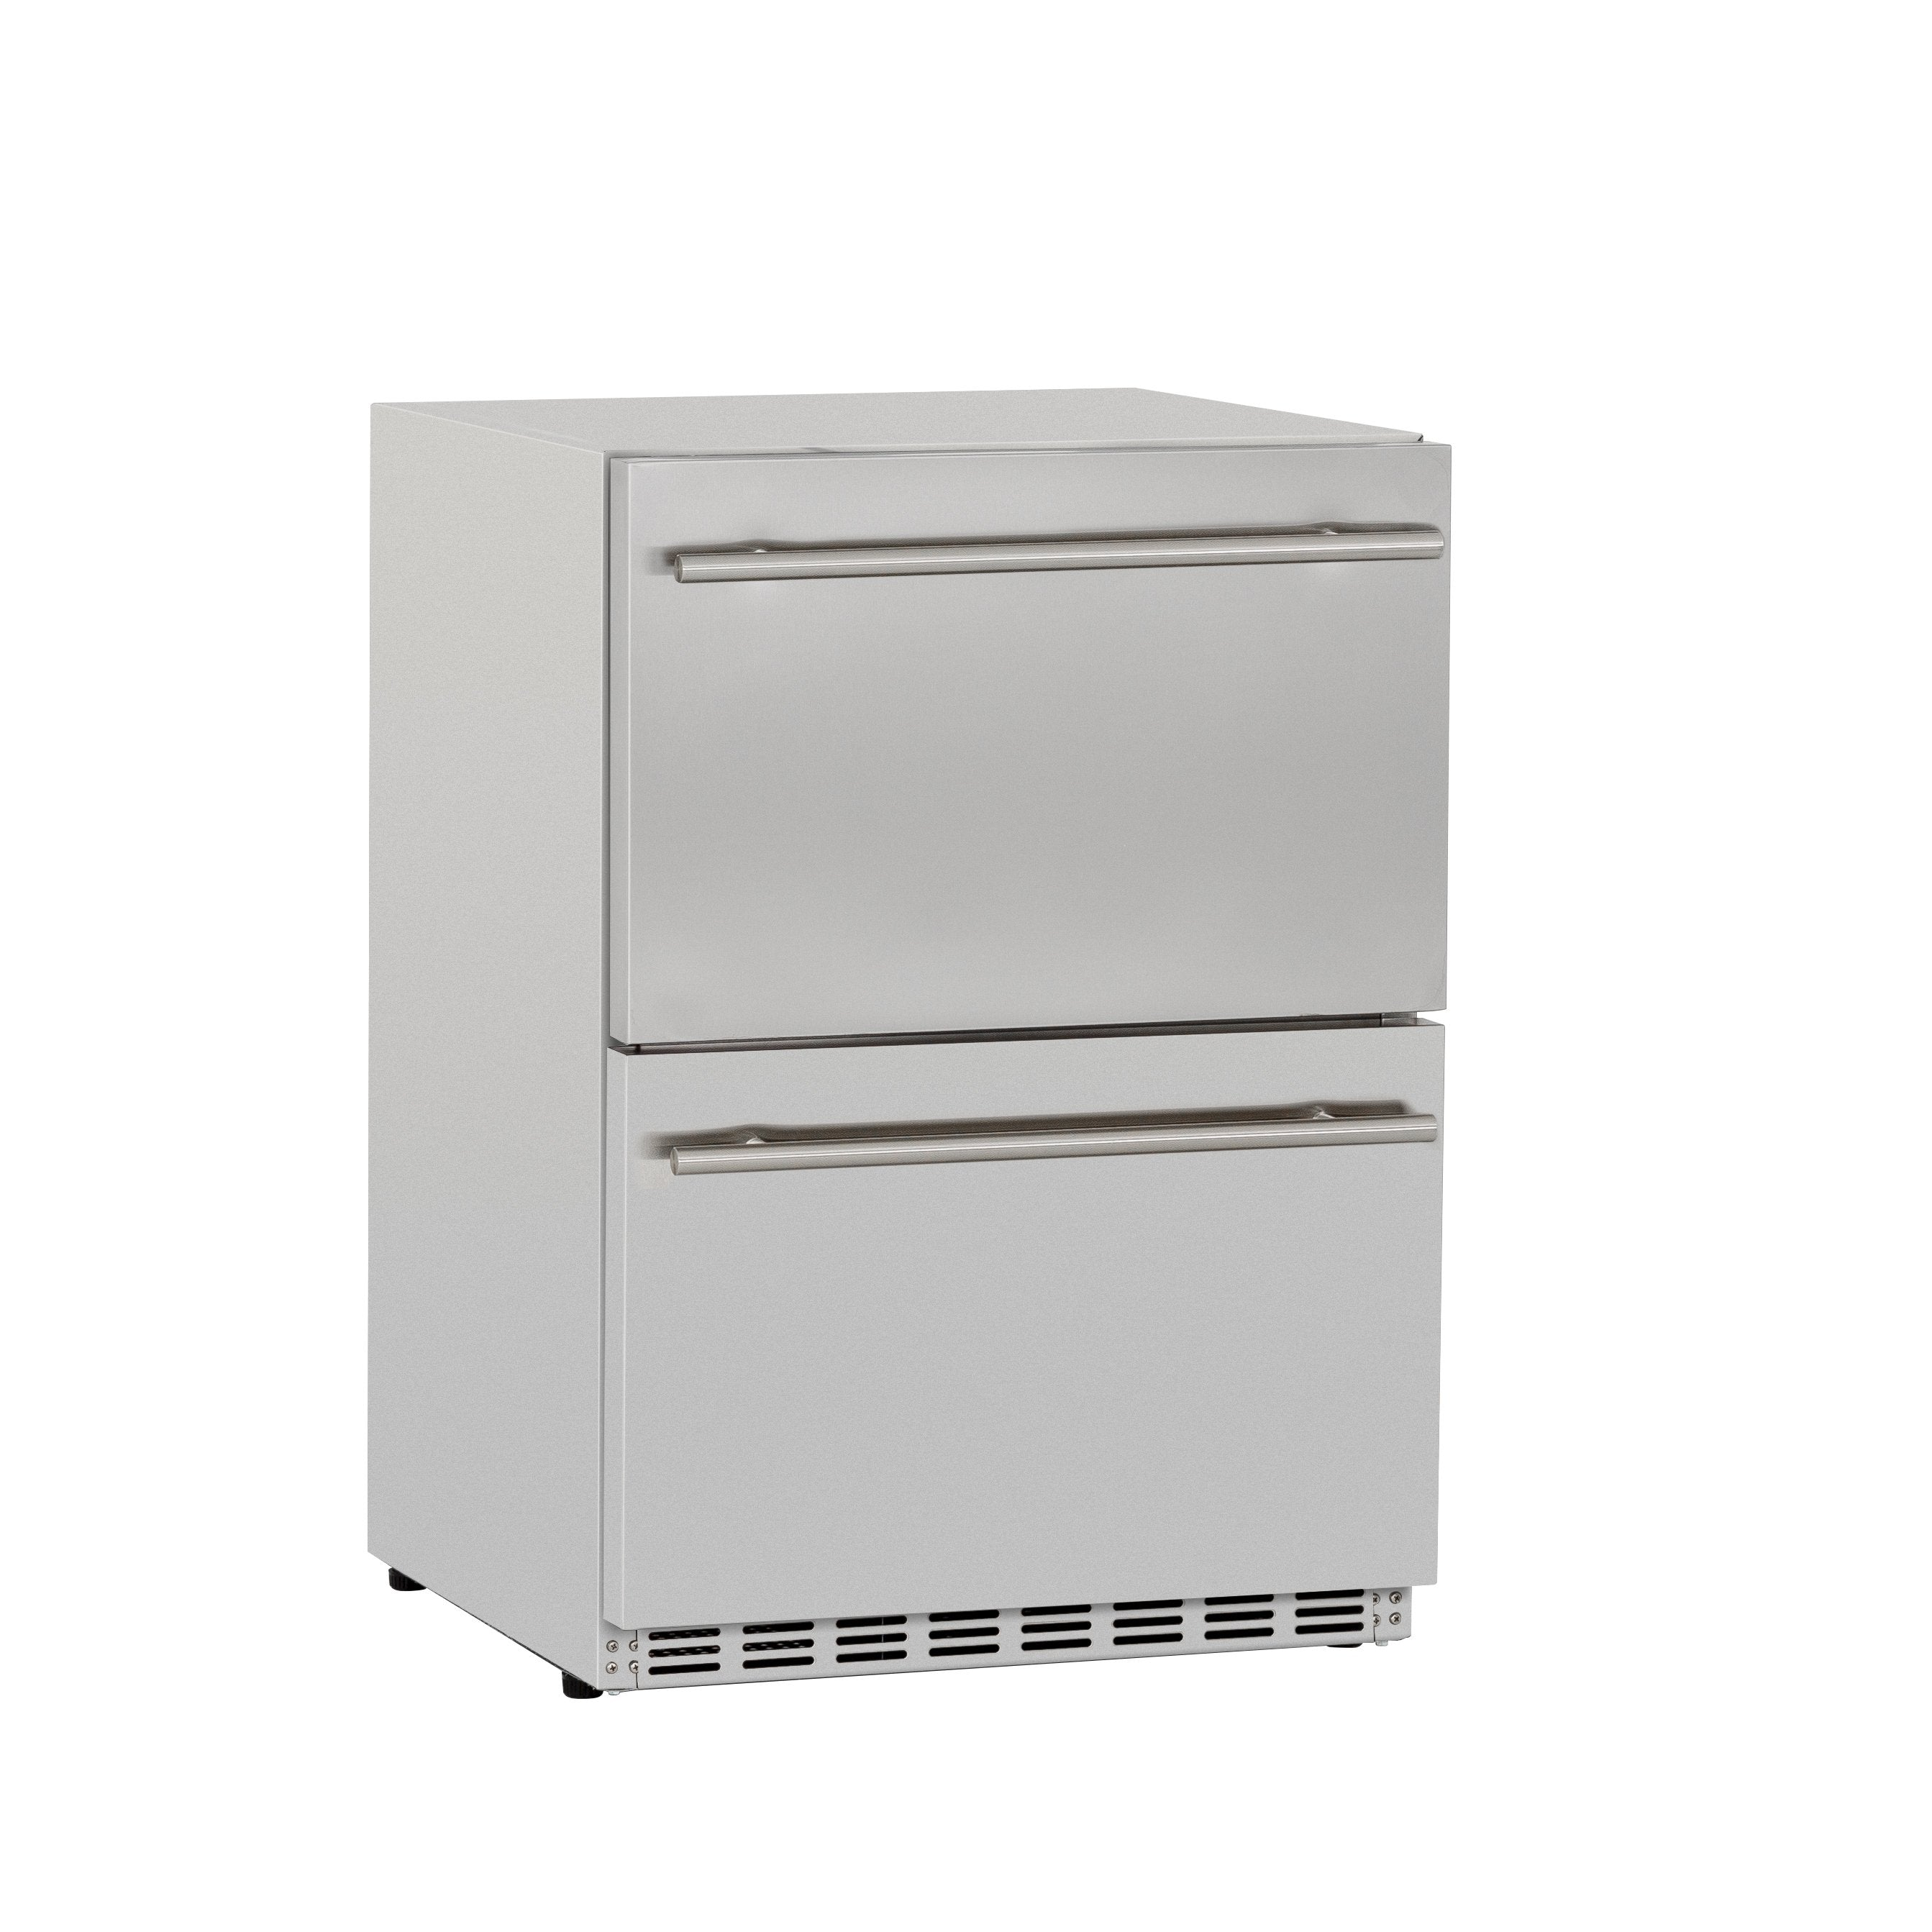 "24"" 5.3c Deluxe Outdoor Rated 2-Drawer Refrigerator"